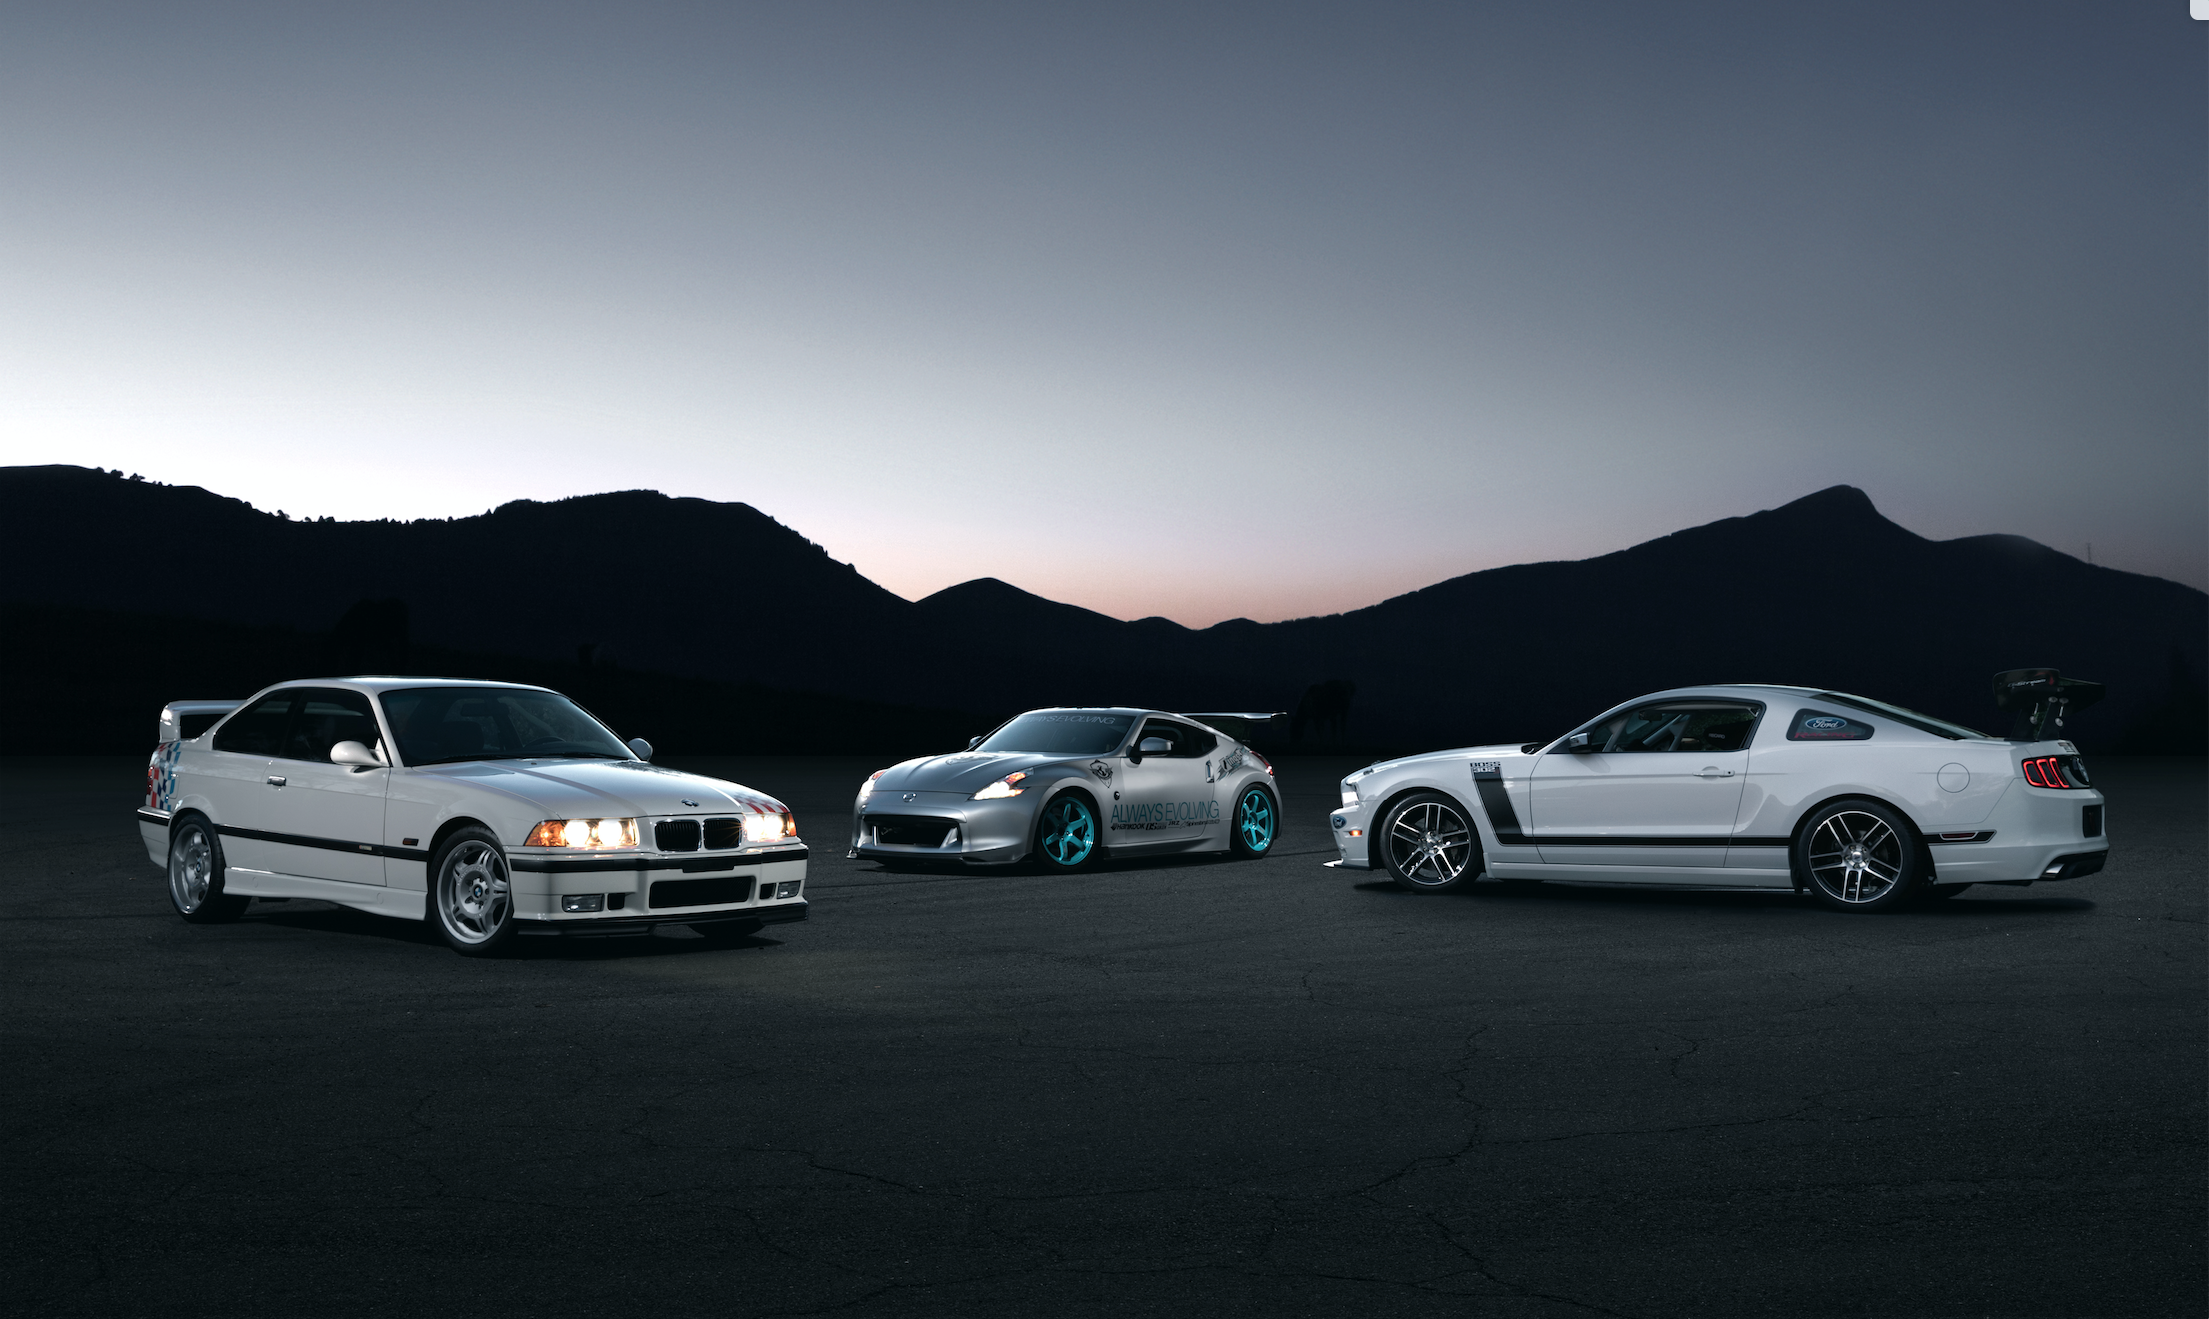 Paul Walker's Five BMW M3 Lightweights Sell for a Combined $1.3 Million